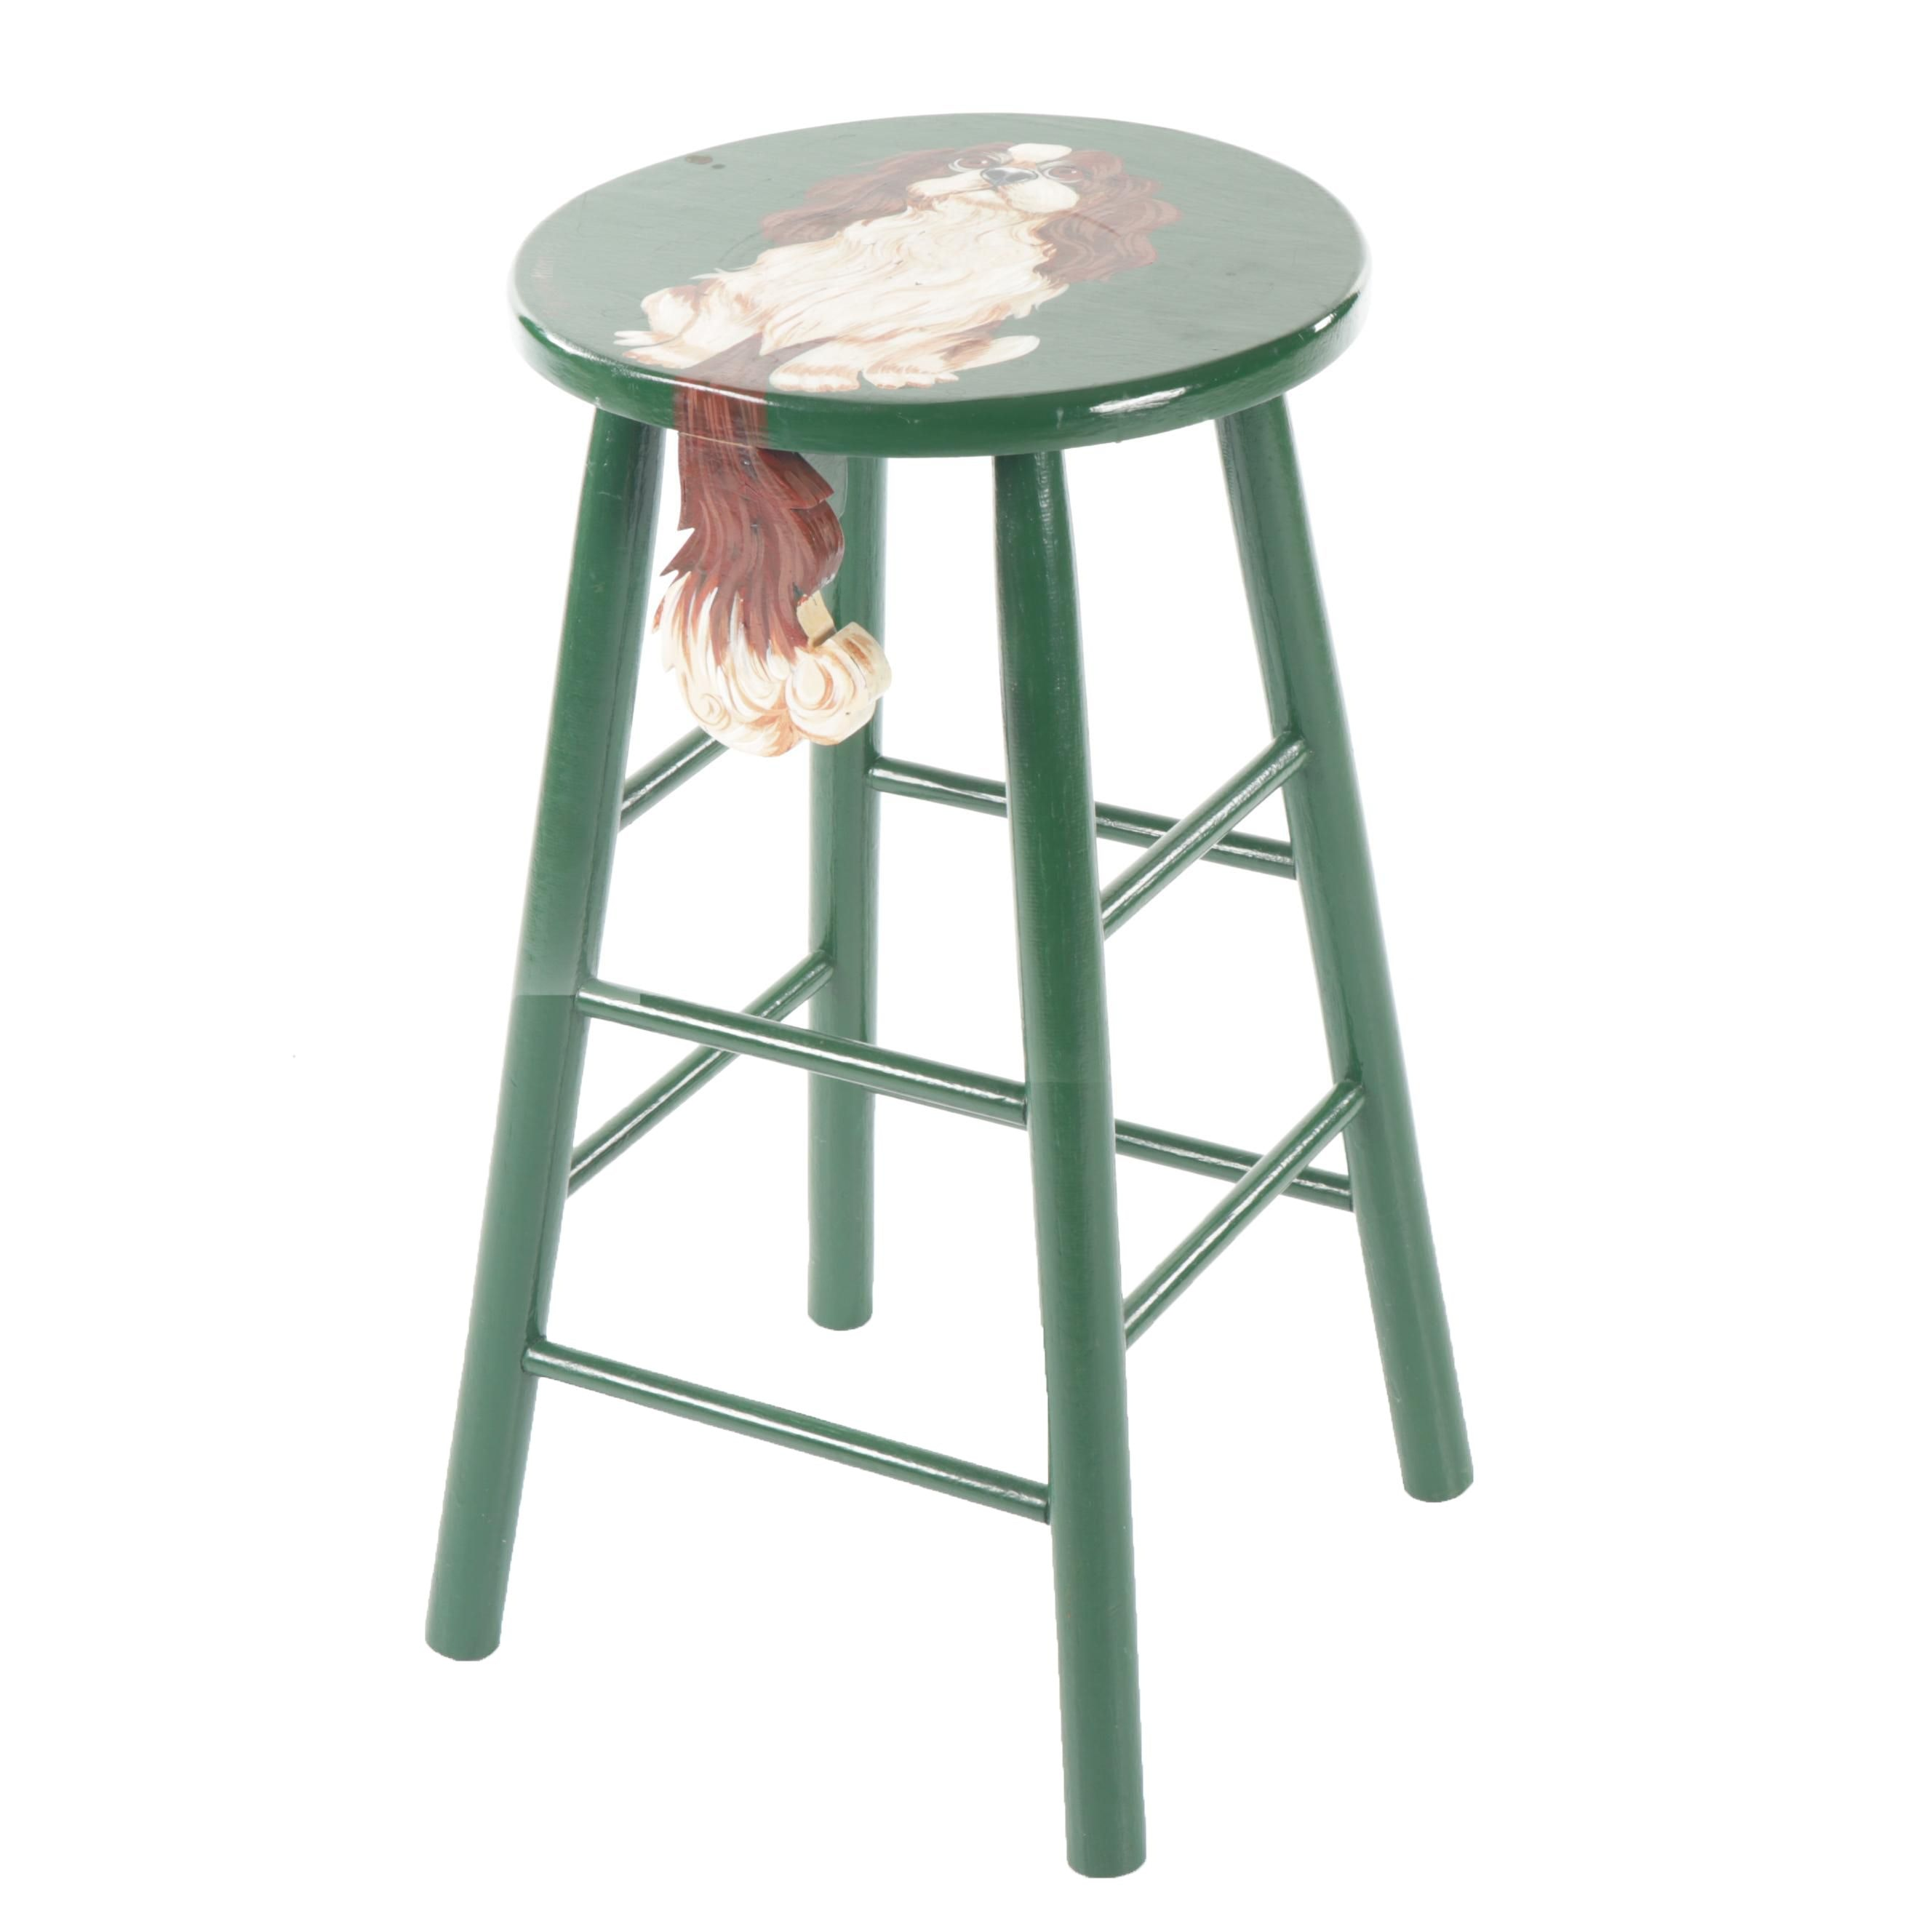 F. Hauserman Cavalier King Charles Painted Stool